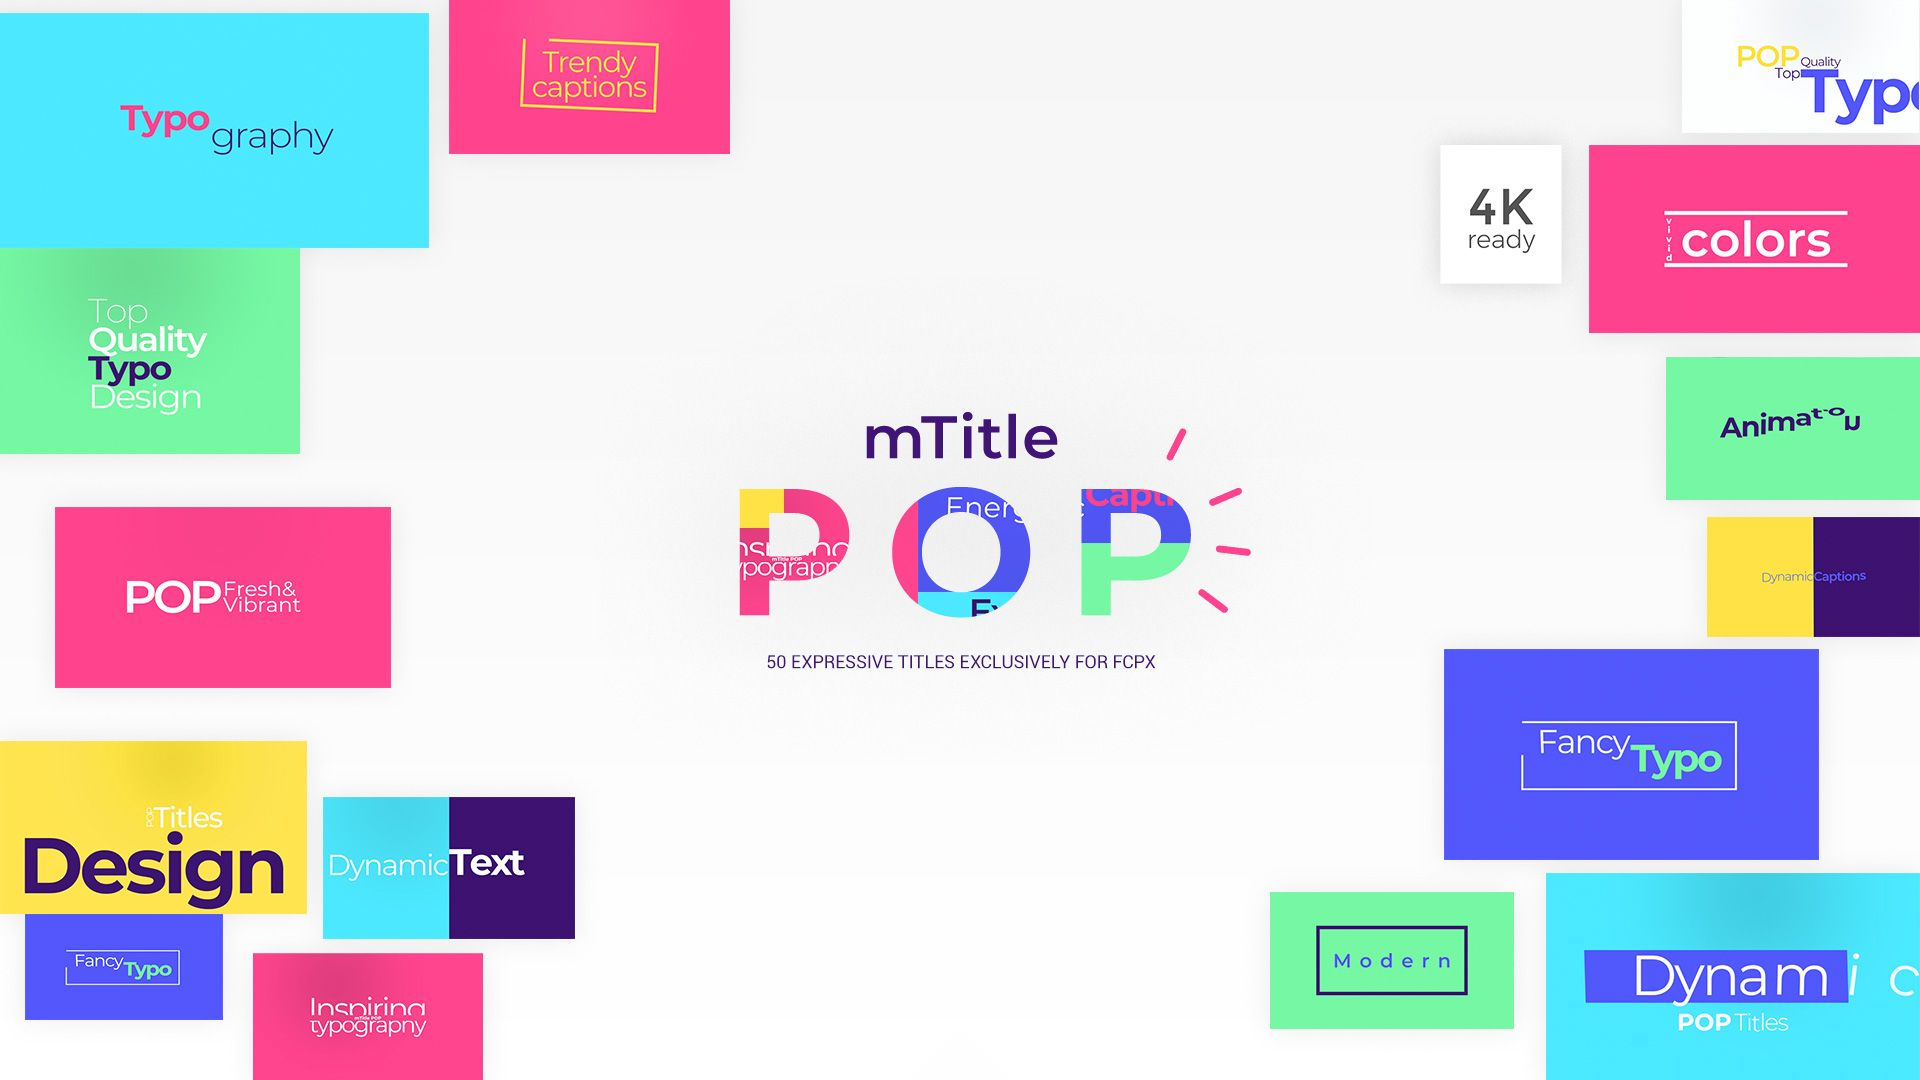 NEW FCPX PLUGIN! Introducing mTitle POP http//bit.ly